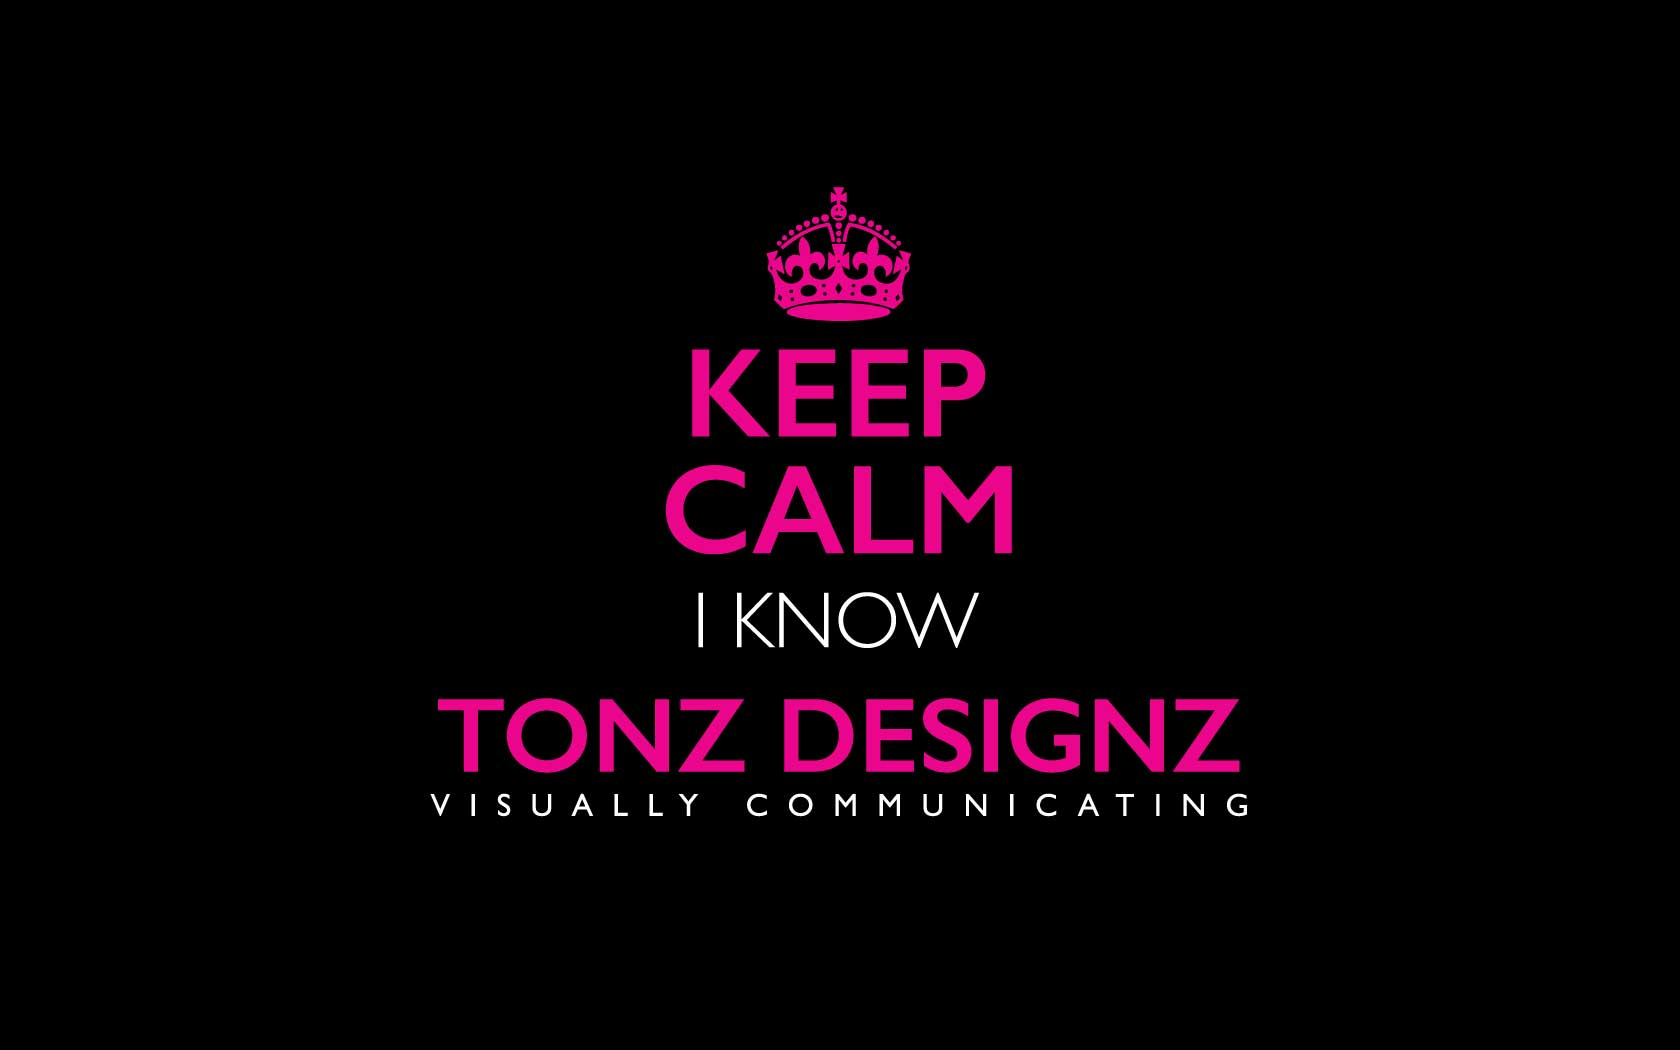 Keep Calm I know Tonz Designs poster